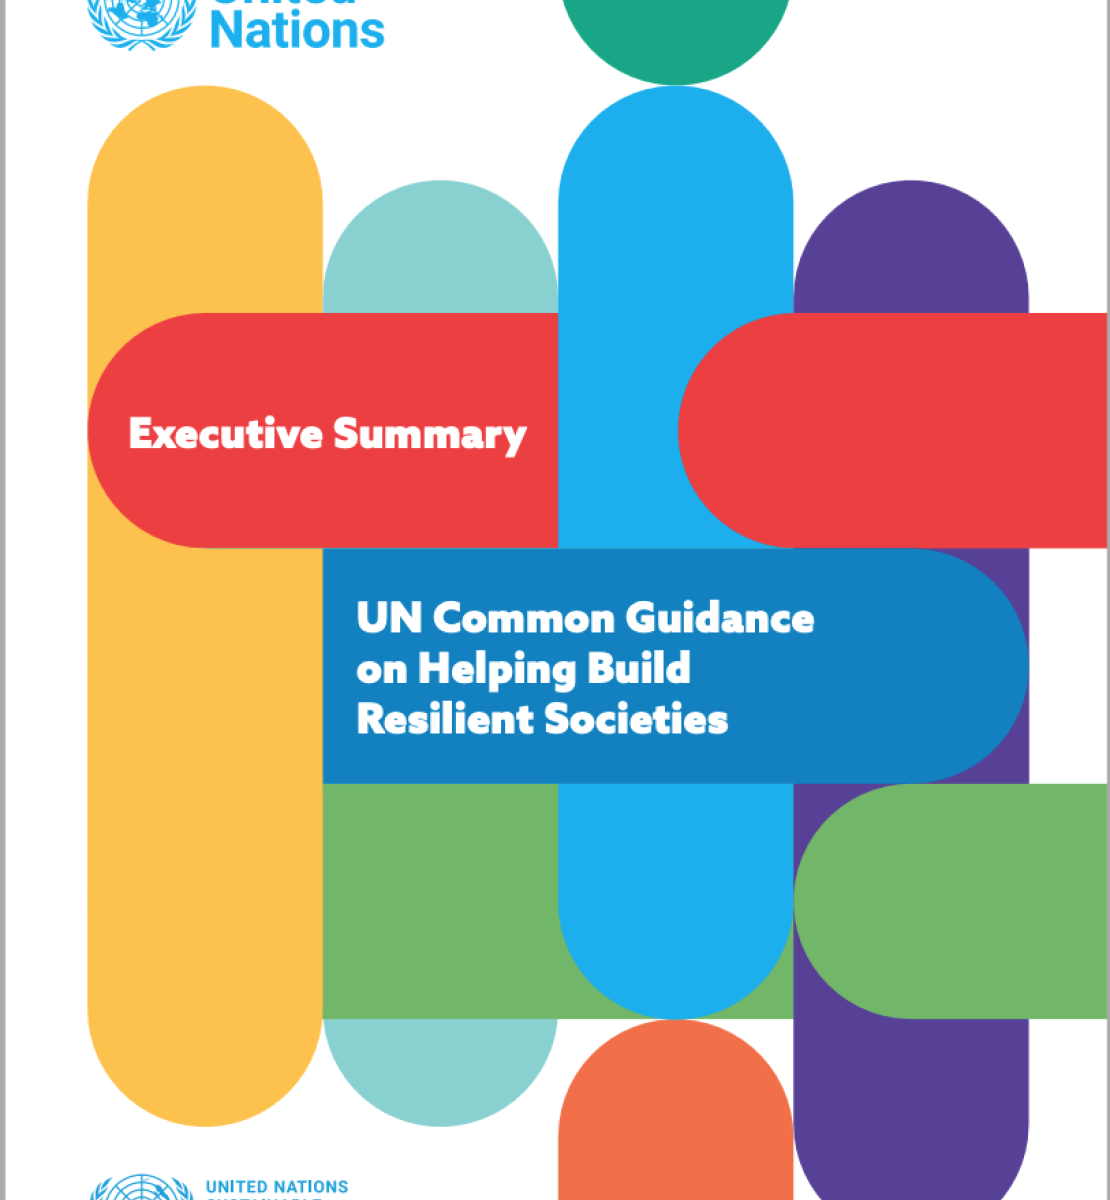 Cover has a white background with the SDG colours presented as elongated and curved oval shapes stretching across the entire cover, with the title positioned centered in front of one of the shapes.